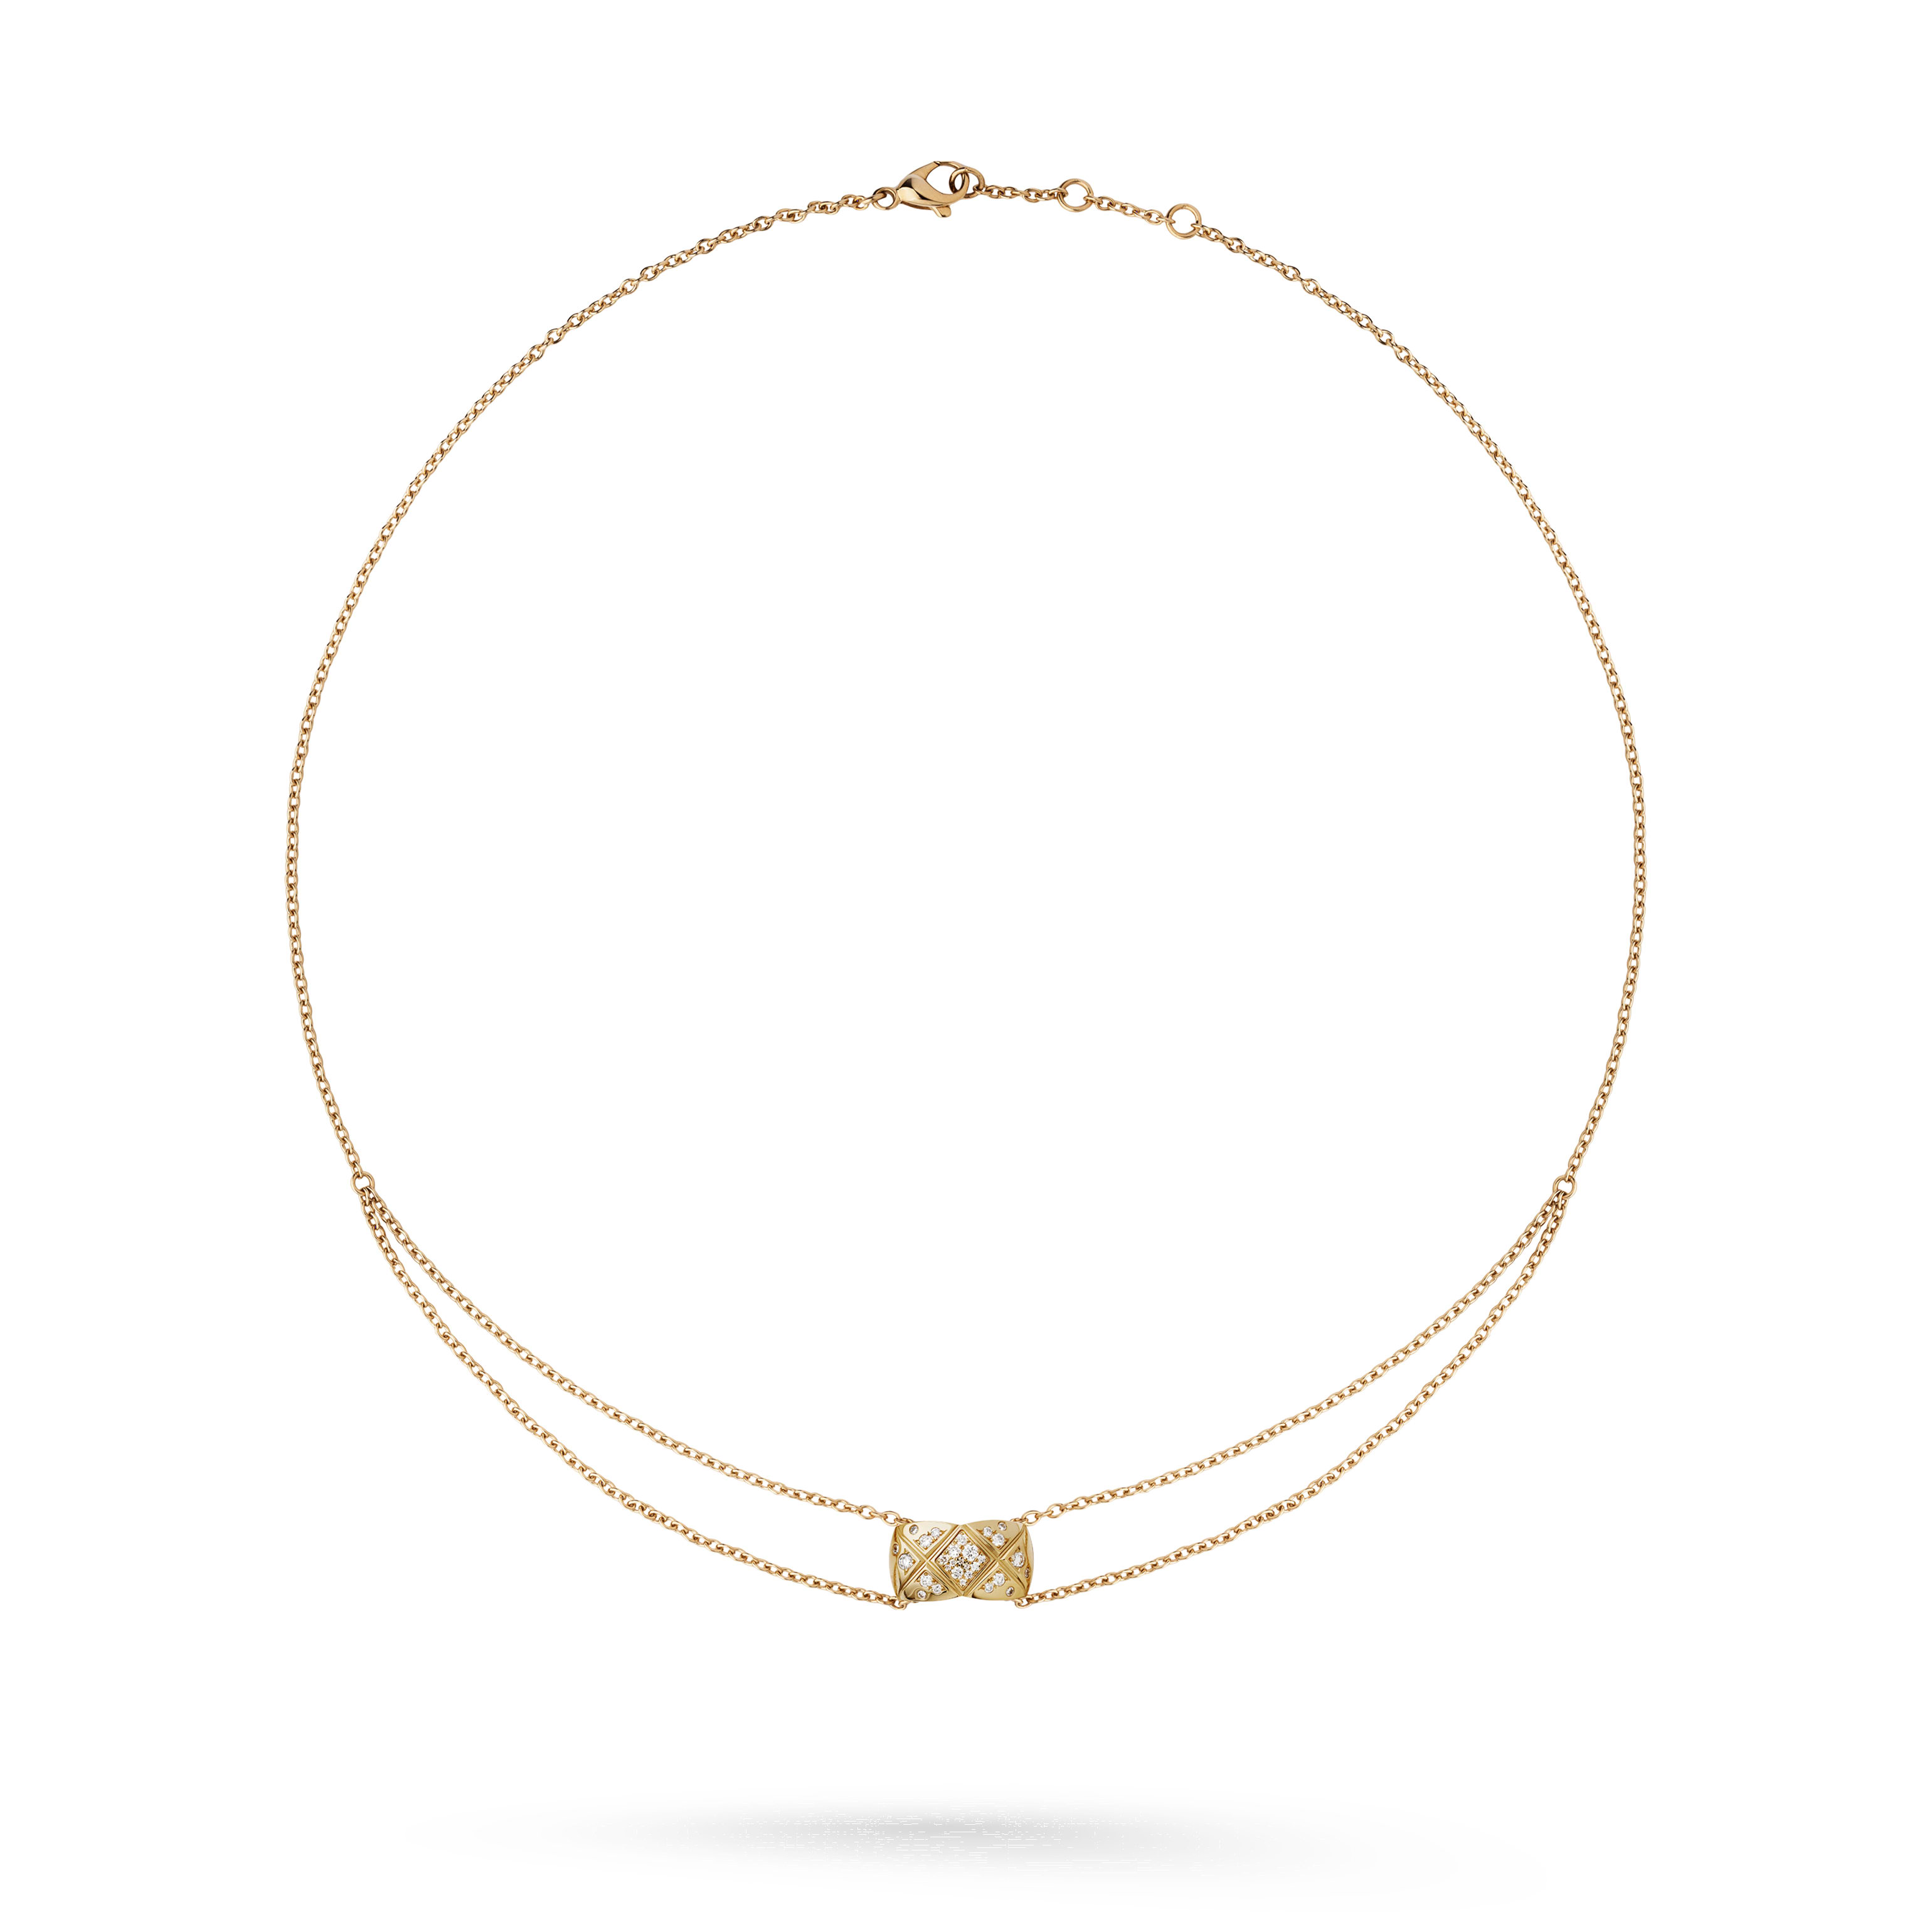 Coco Crush necklace - Quilted motif, 18K BEIGE GOLD, diamonds - CHANEL - Default view - see standard sized version